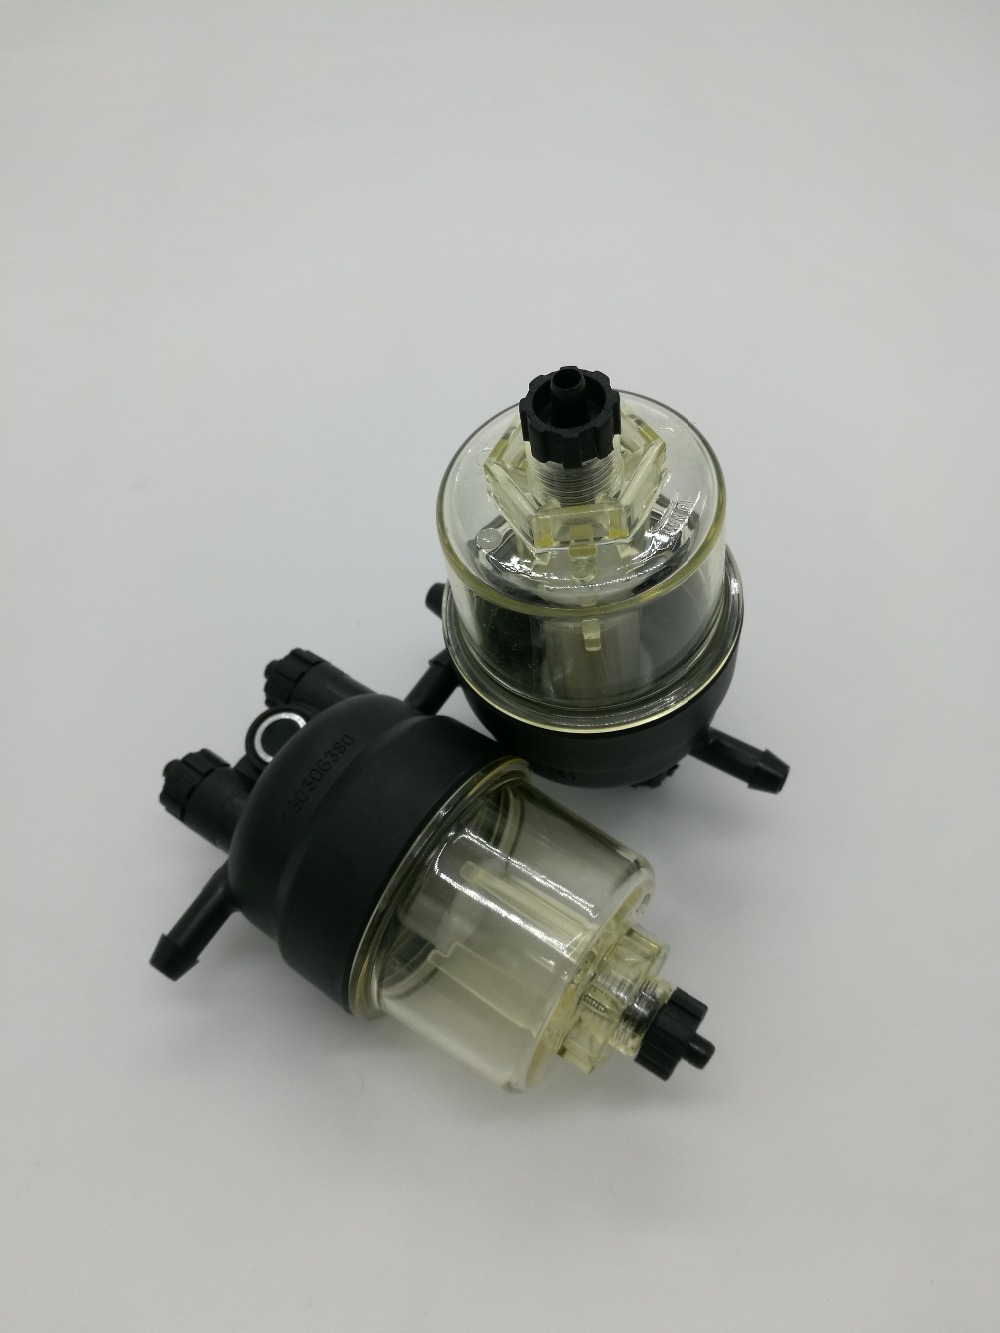 Pre-fuel water separator filter 130306380 400 series engine for Perkins (2 PCS) <br>